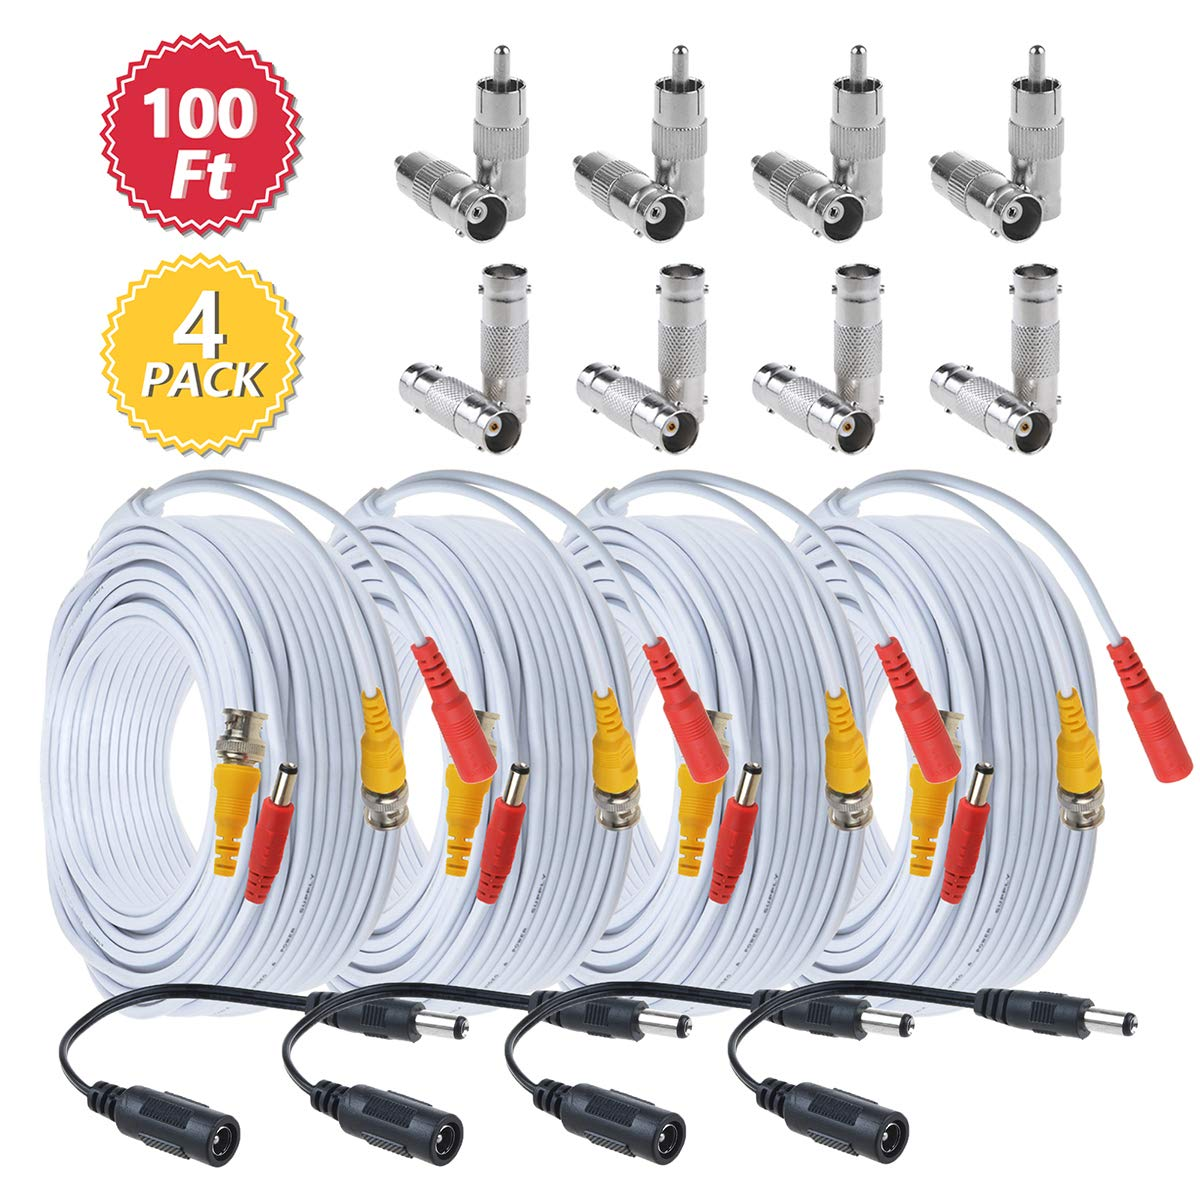 BNC Cables 100ft 4 Pack HD Security Camera Cables Heavy Duty BNC Video Power Extension Cable with BNC to BNC, BNC to RCA Connectors, DC Power Cables for CCTV DVR Security Camera System-Flashmen by Flashmen